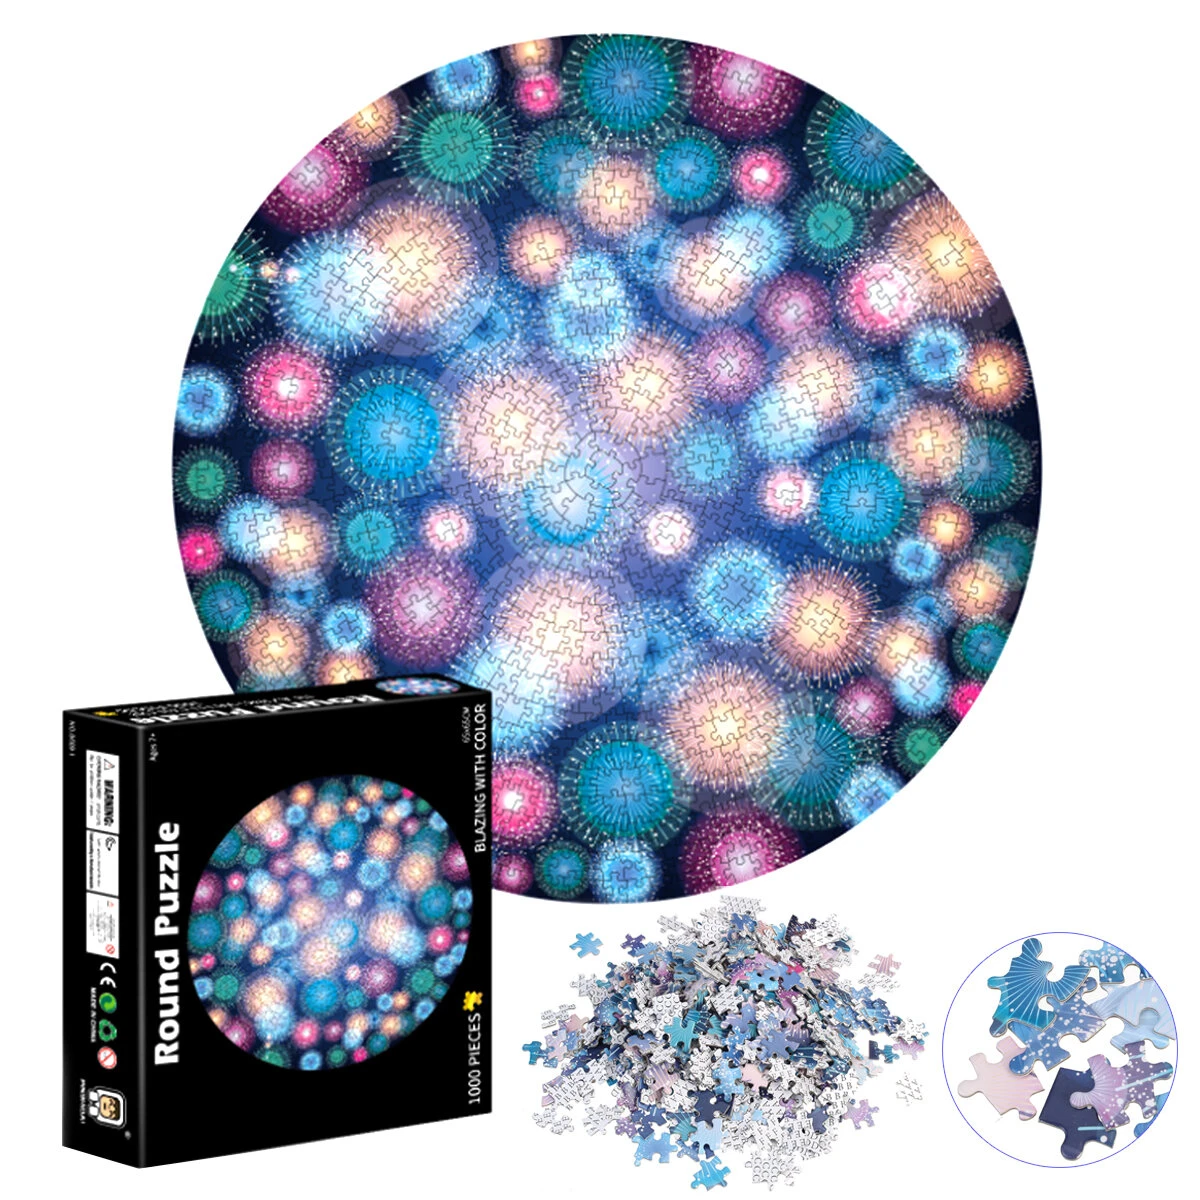 1000 Pieces Round Jigsaw Puzzle Blazing With Color Puzzle Family Puzzle Game Learning Education Toy Gift For Adults Kids